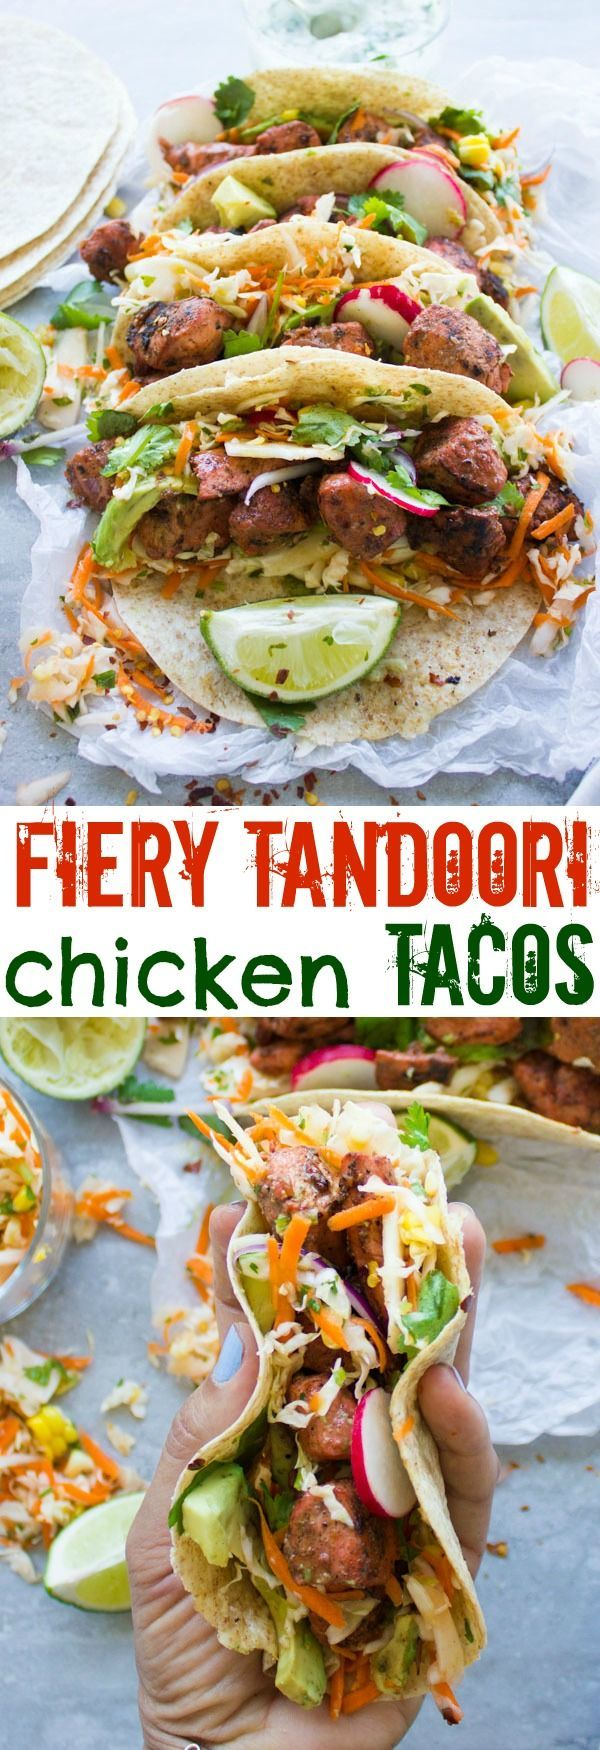 Fiery Tandoori Chicken Tacos with Cilantro Corn Slaw. This is a crazy delicious twist which combines the best of both worlds--succulent tender fiery tandoori chicken pieces on a bed of zesty cilantro corn slaw, topped with radishes, avocados and yogurt sauce, all wrapped in a taco! This recipe is a REAL crowd pleaser in a flash! make it now! http://www.twopurplefigs.com